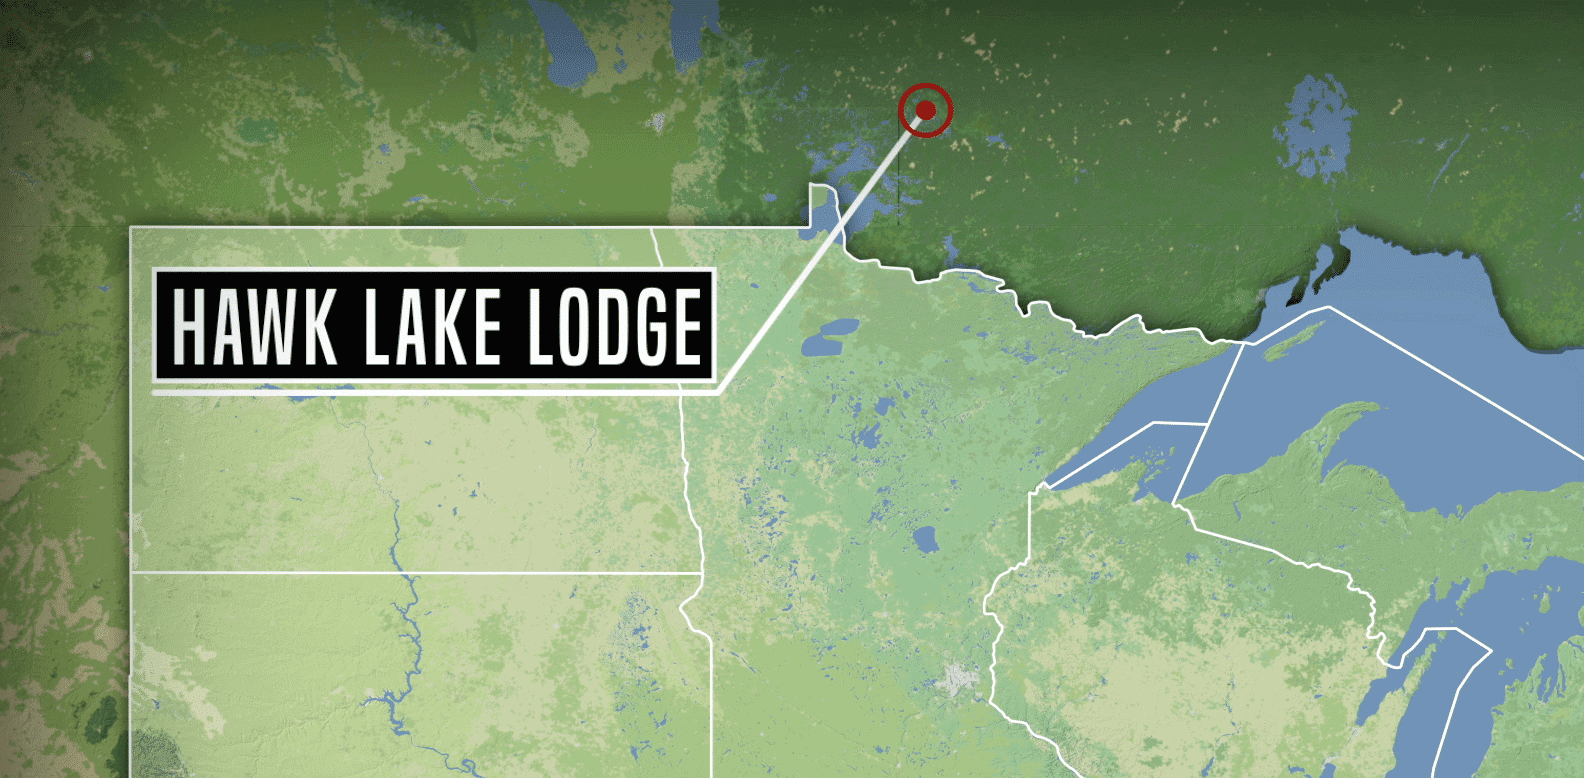 Hawk Lake Lodge – BIG Walleye Destination